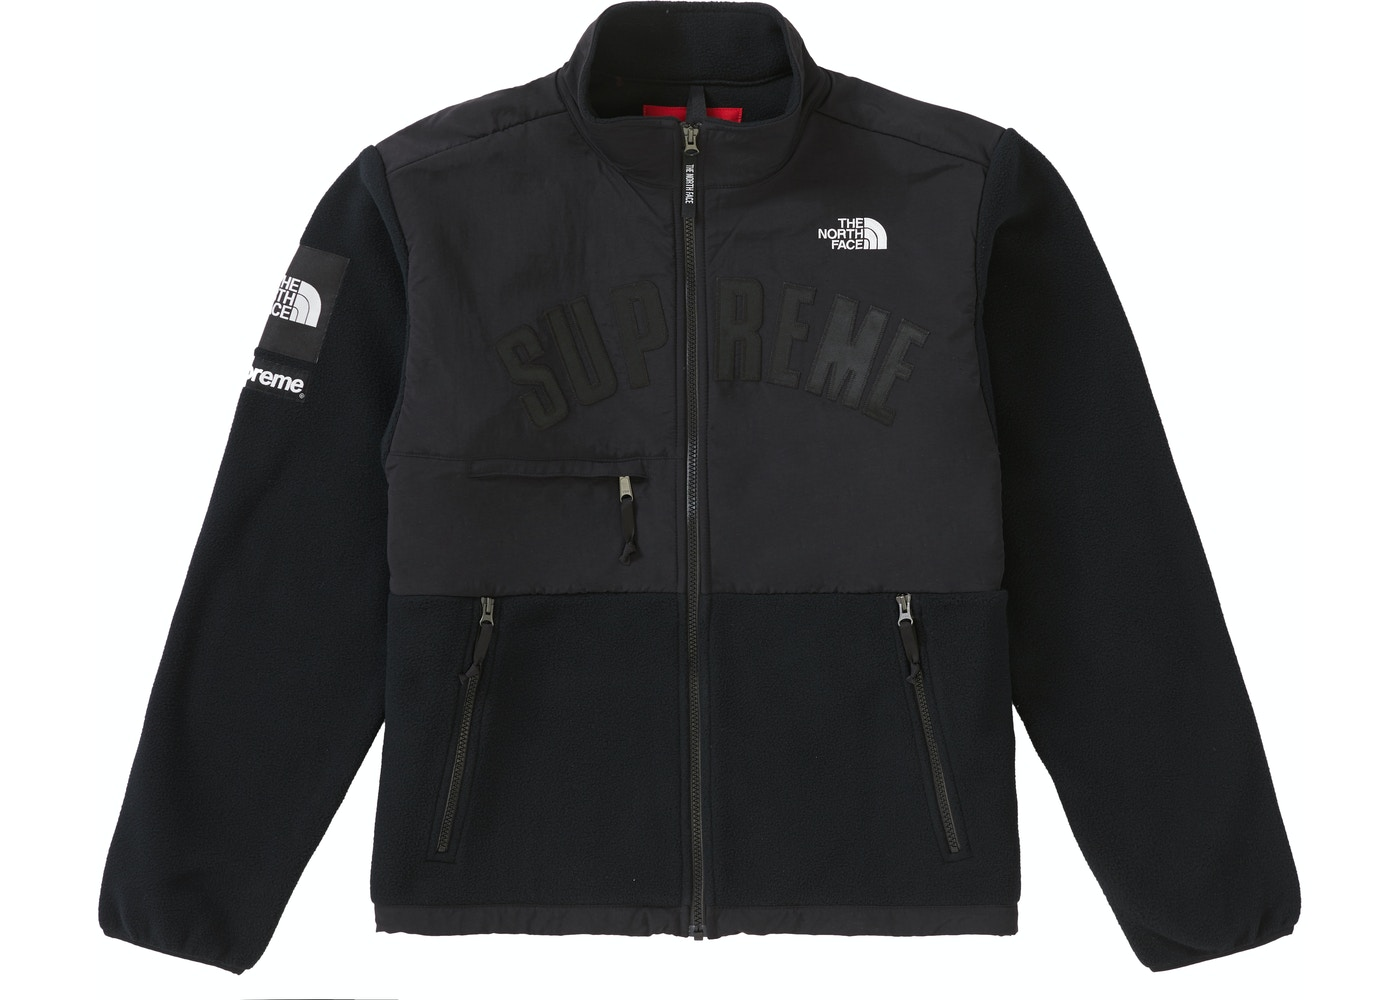 c5a73b699 Supreme The North Face Arc Logo Denali Fleece Jacket Black